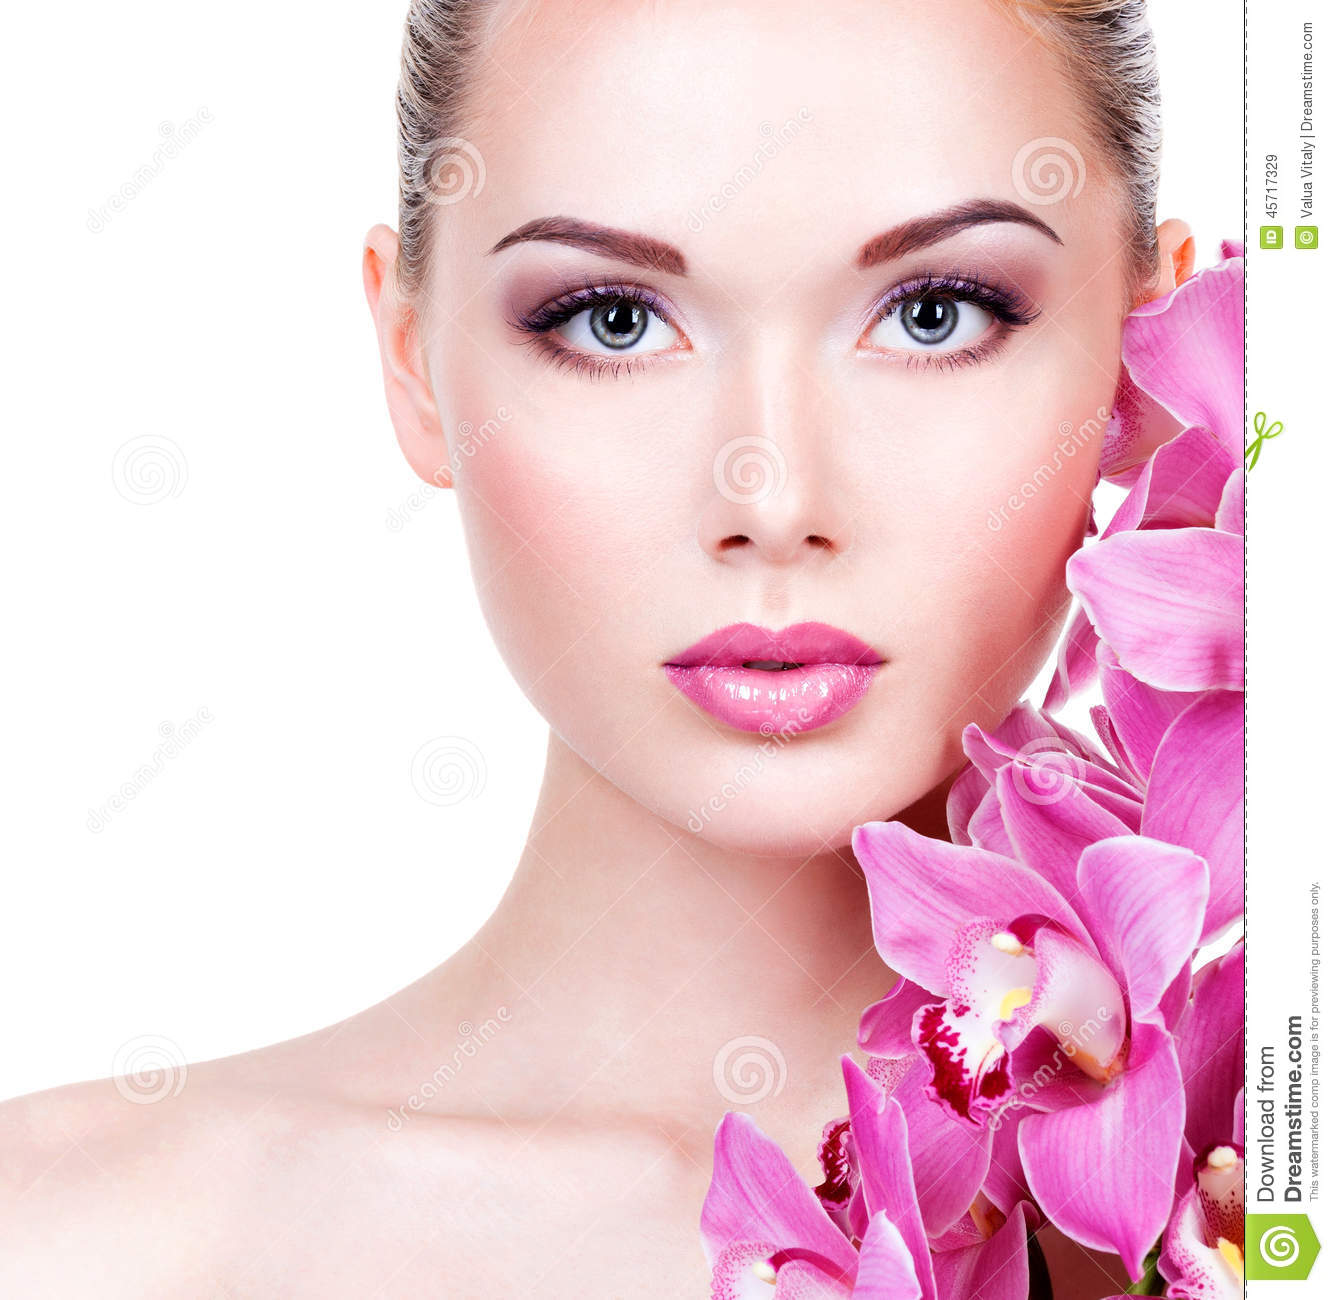 Face A Woman With Purple Eye Makeup And Lips Stock Image Image